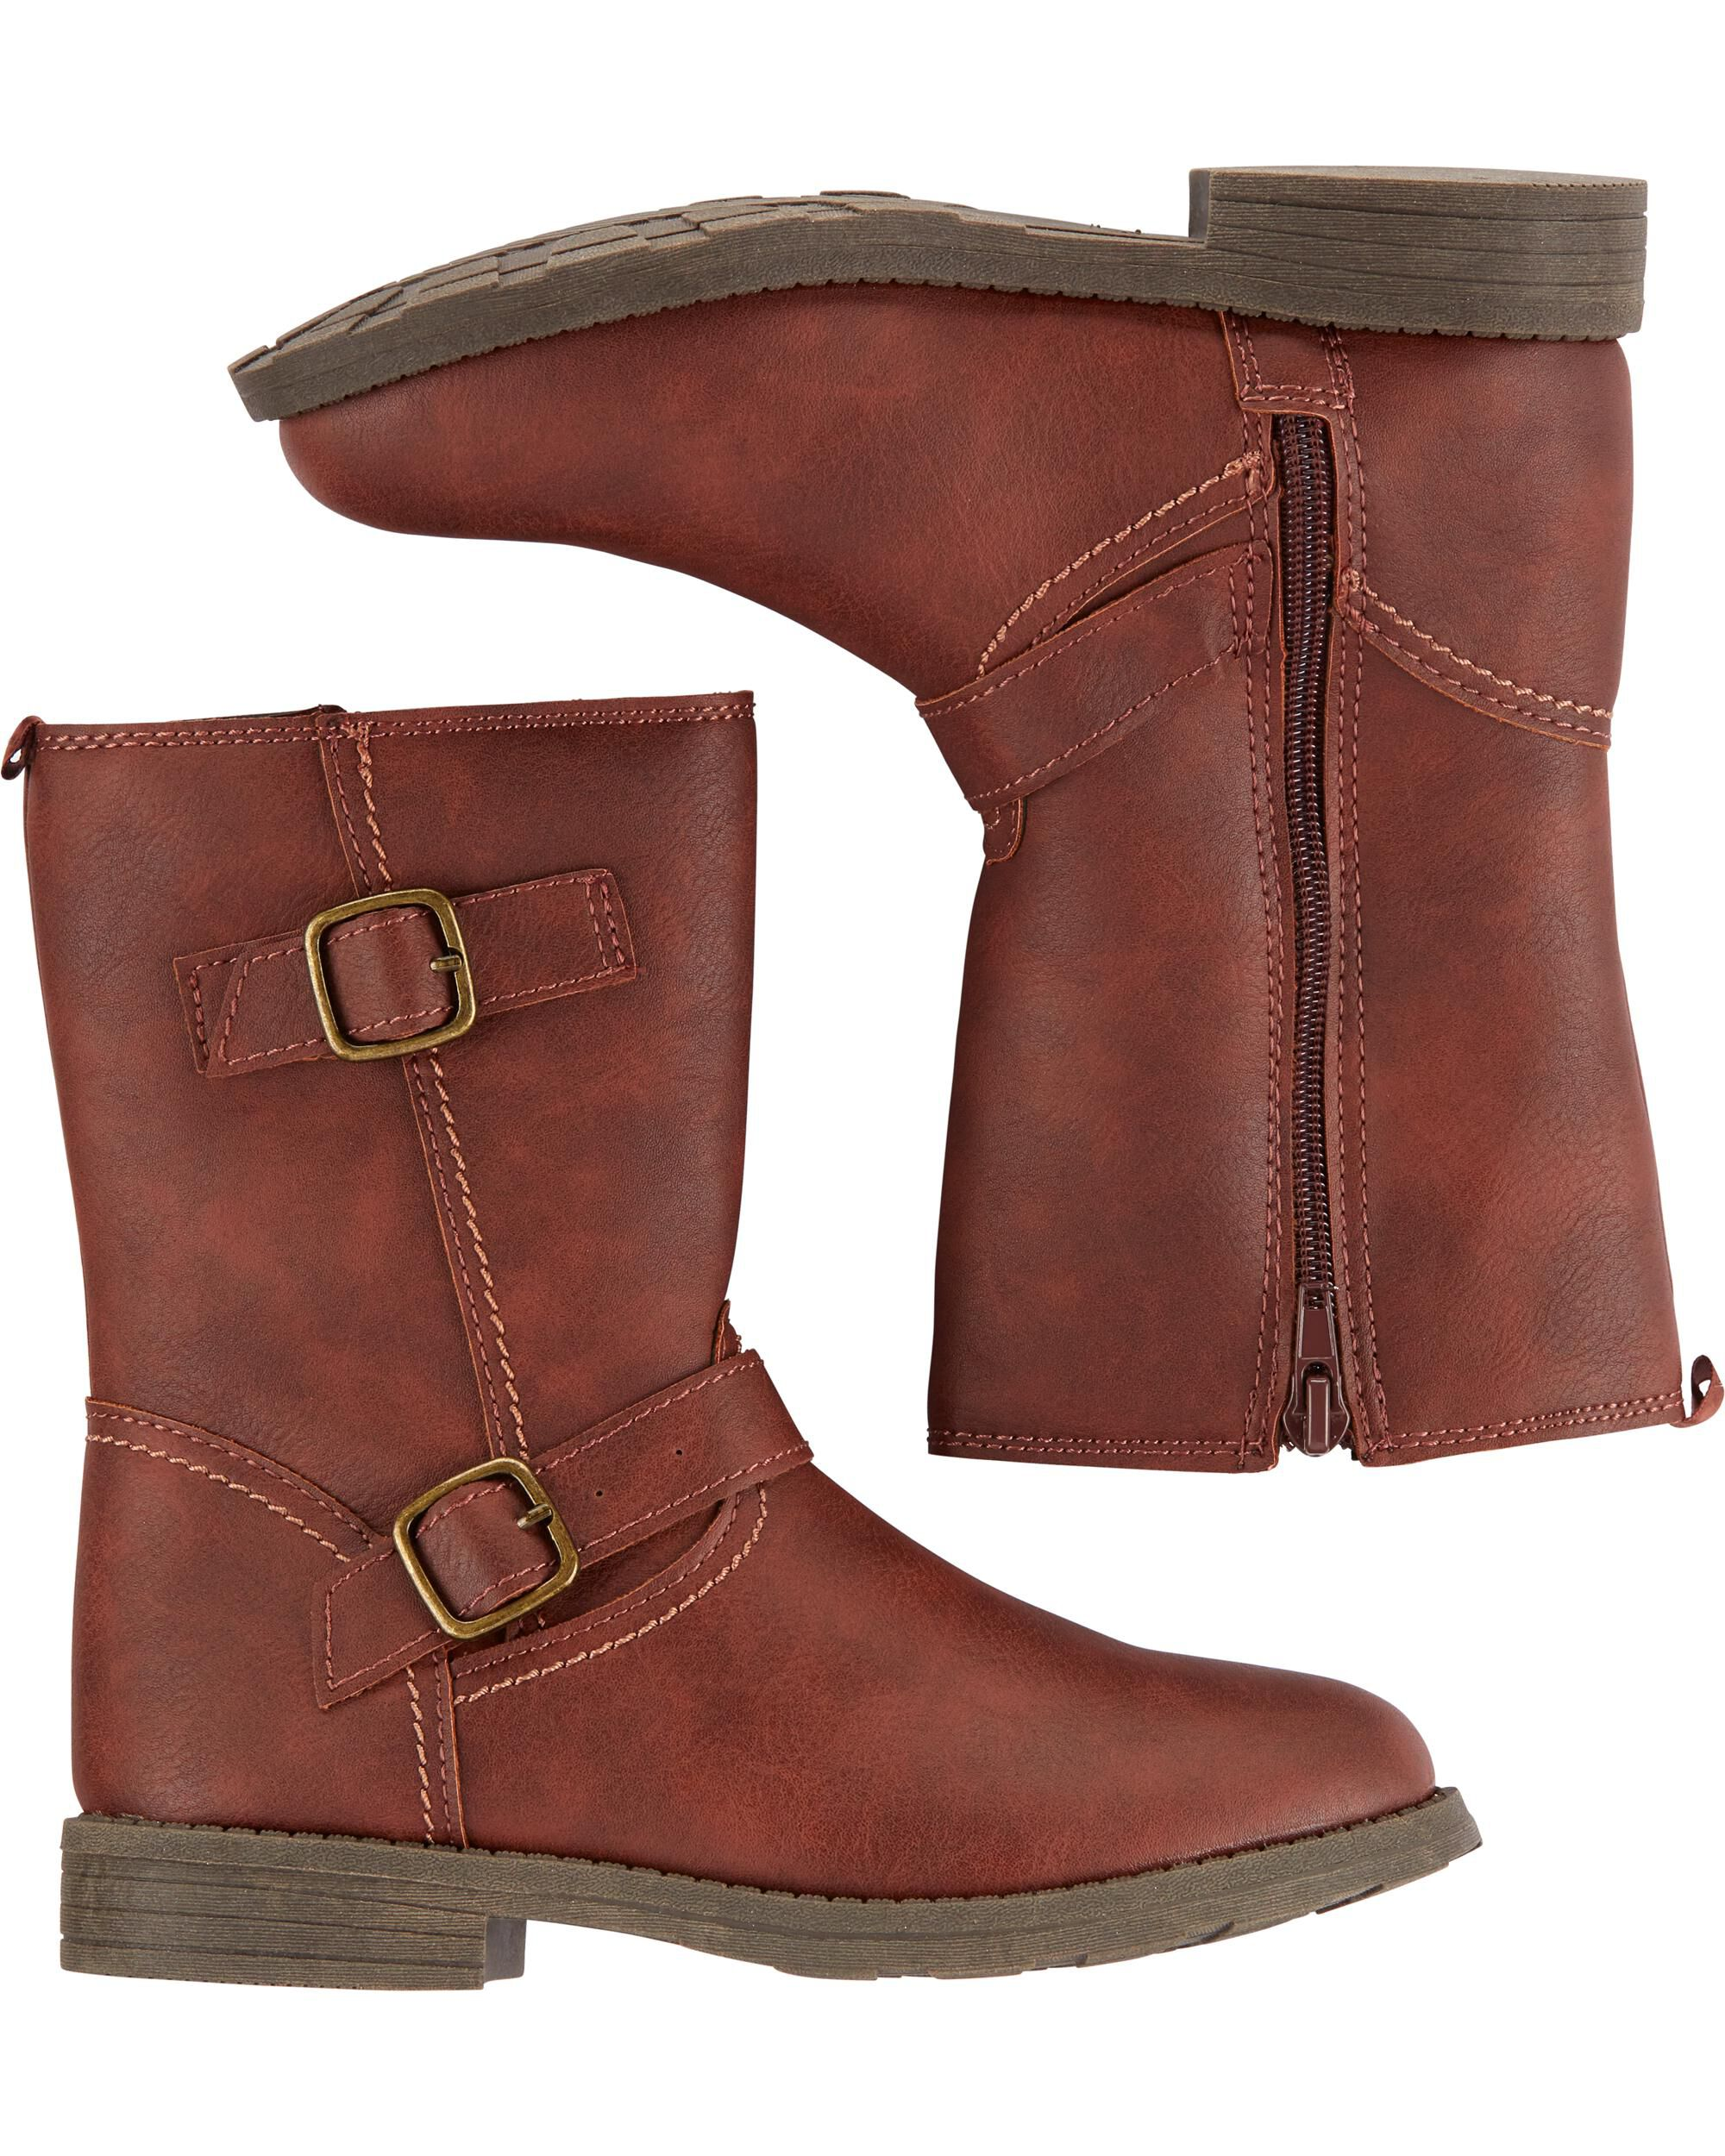 Shoes | Carter's | Free Shipping